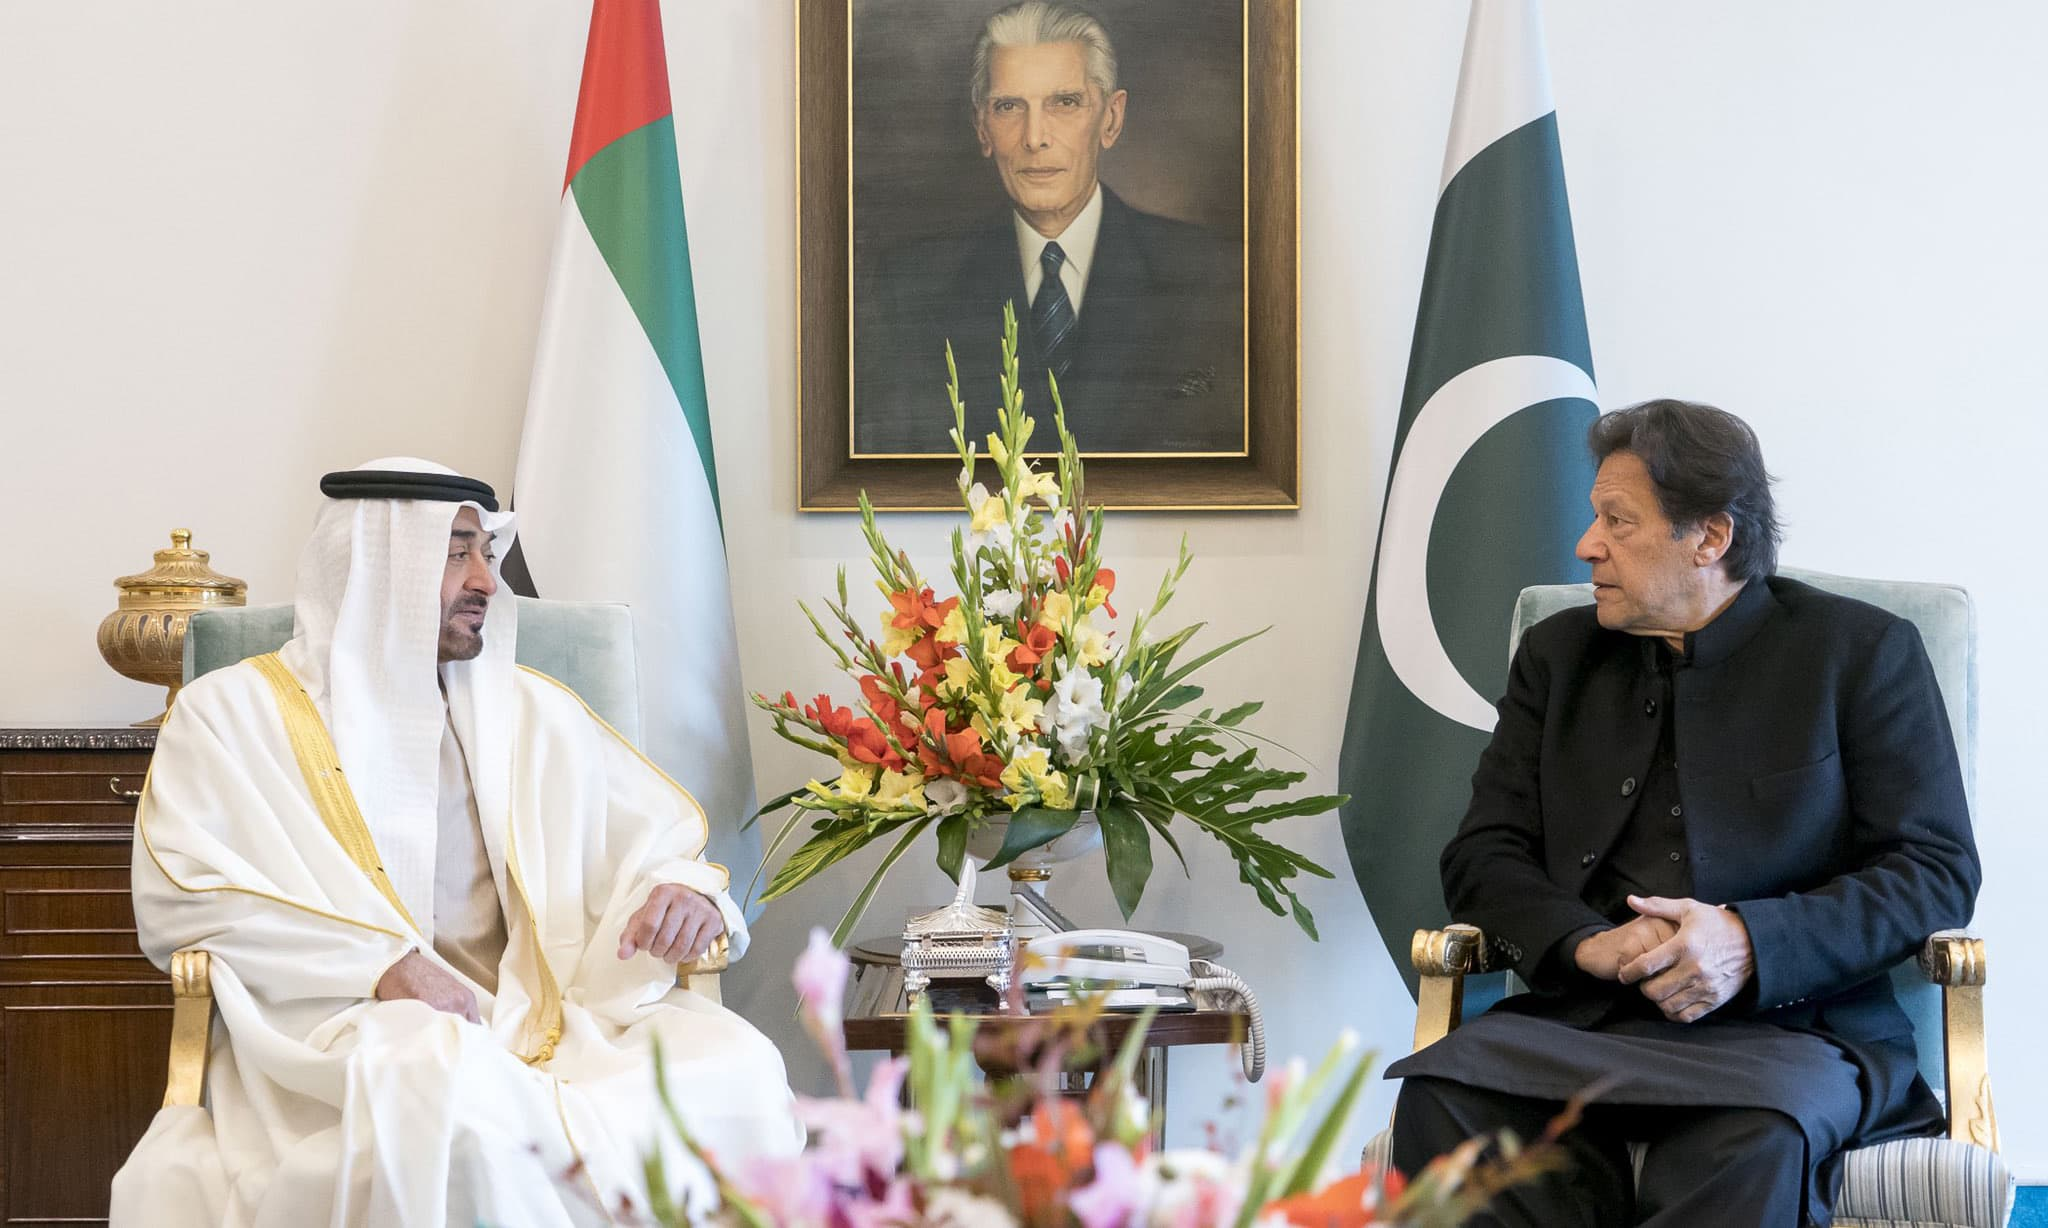 Prime Minister Imran Khan with Abu Dhabi Crown Prince Sheikh Mohammed bin Zayed Al Nahyan in Islamabad on Thursday. — @MohamedBinZayed